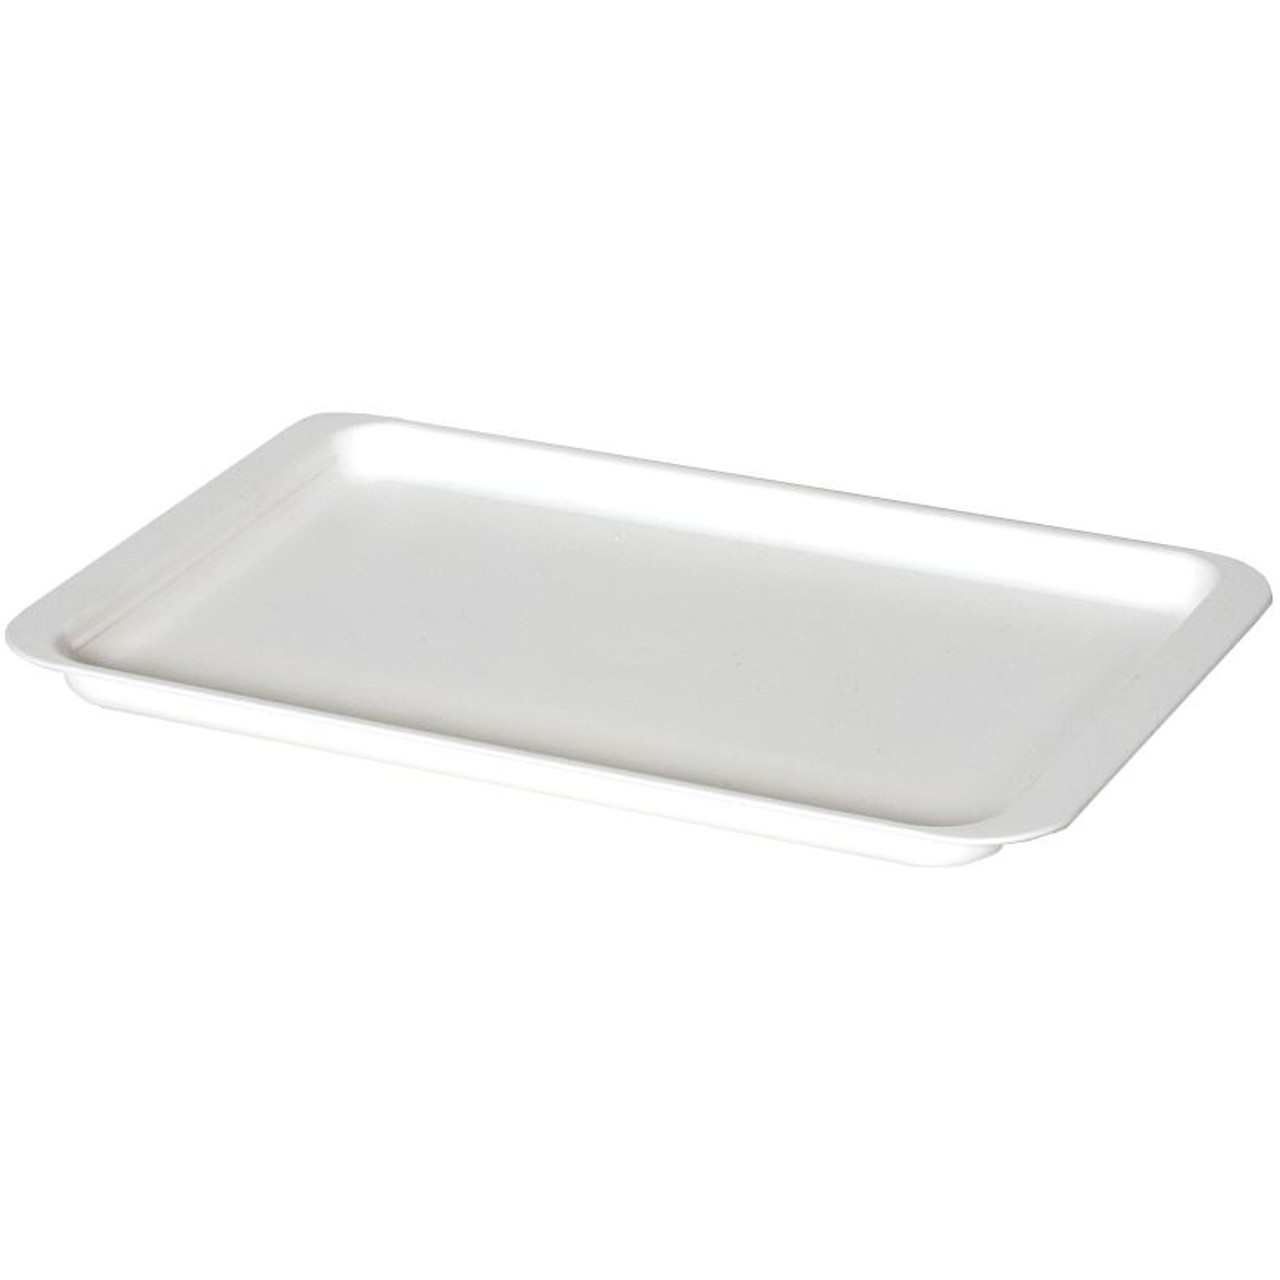 Delfinware Plastic Tray in White